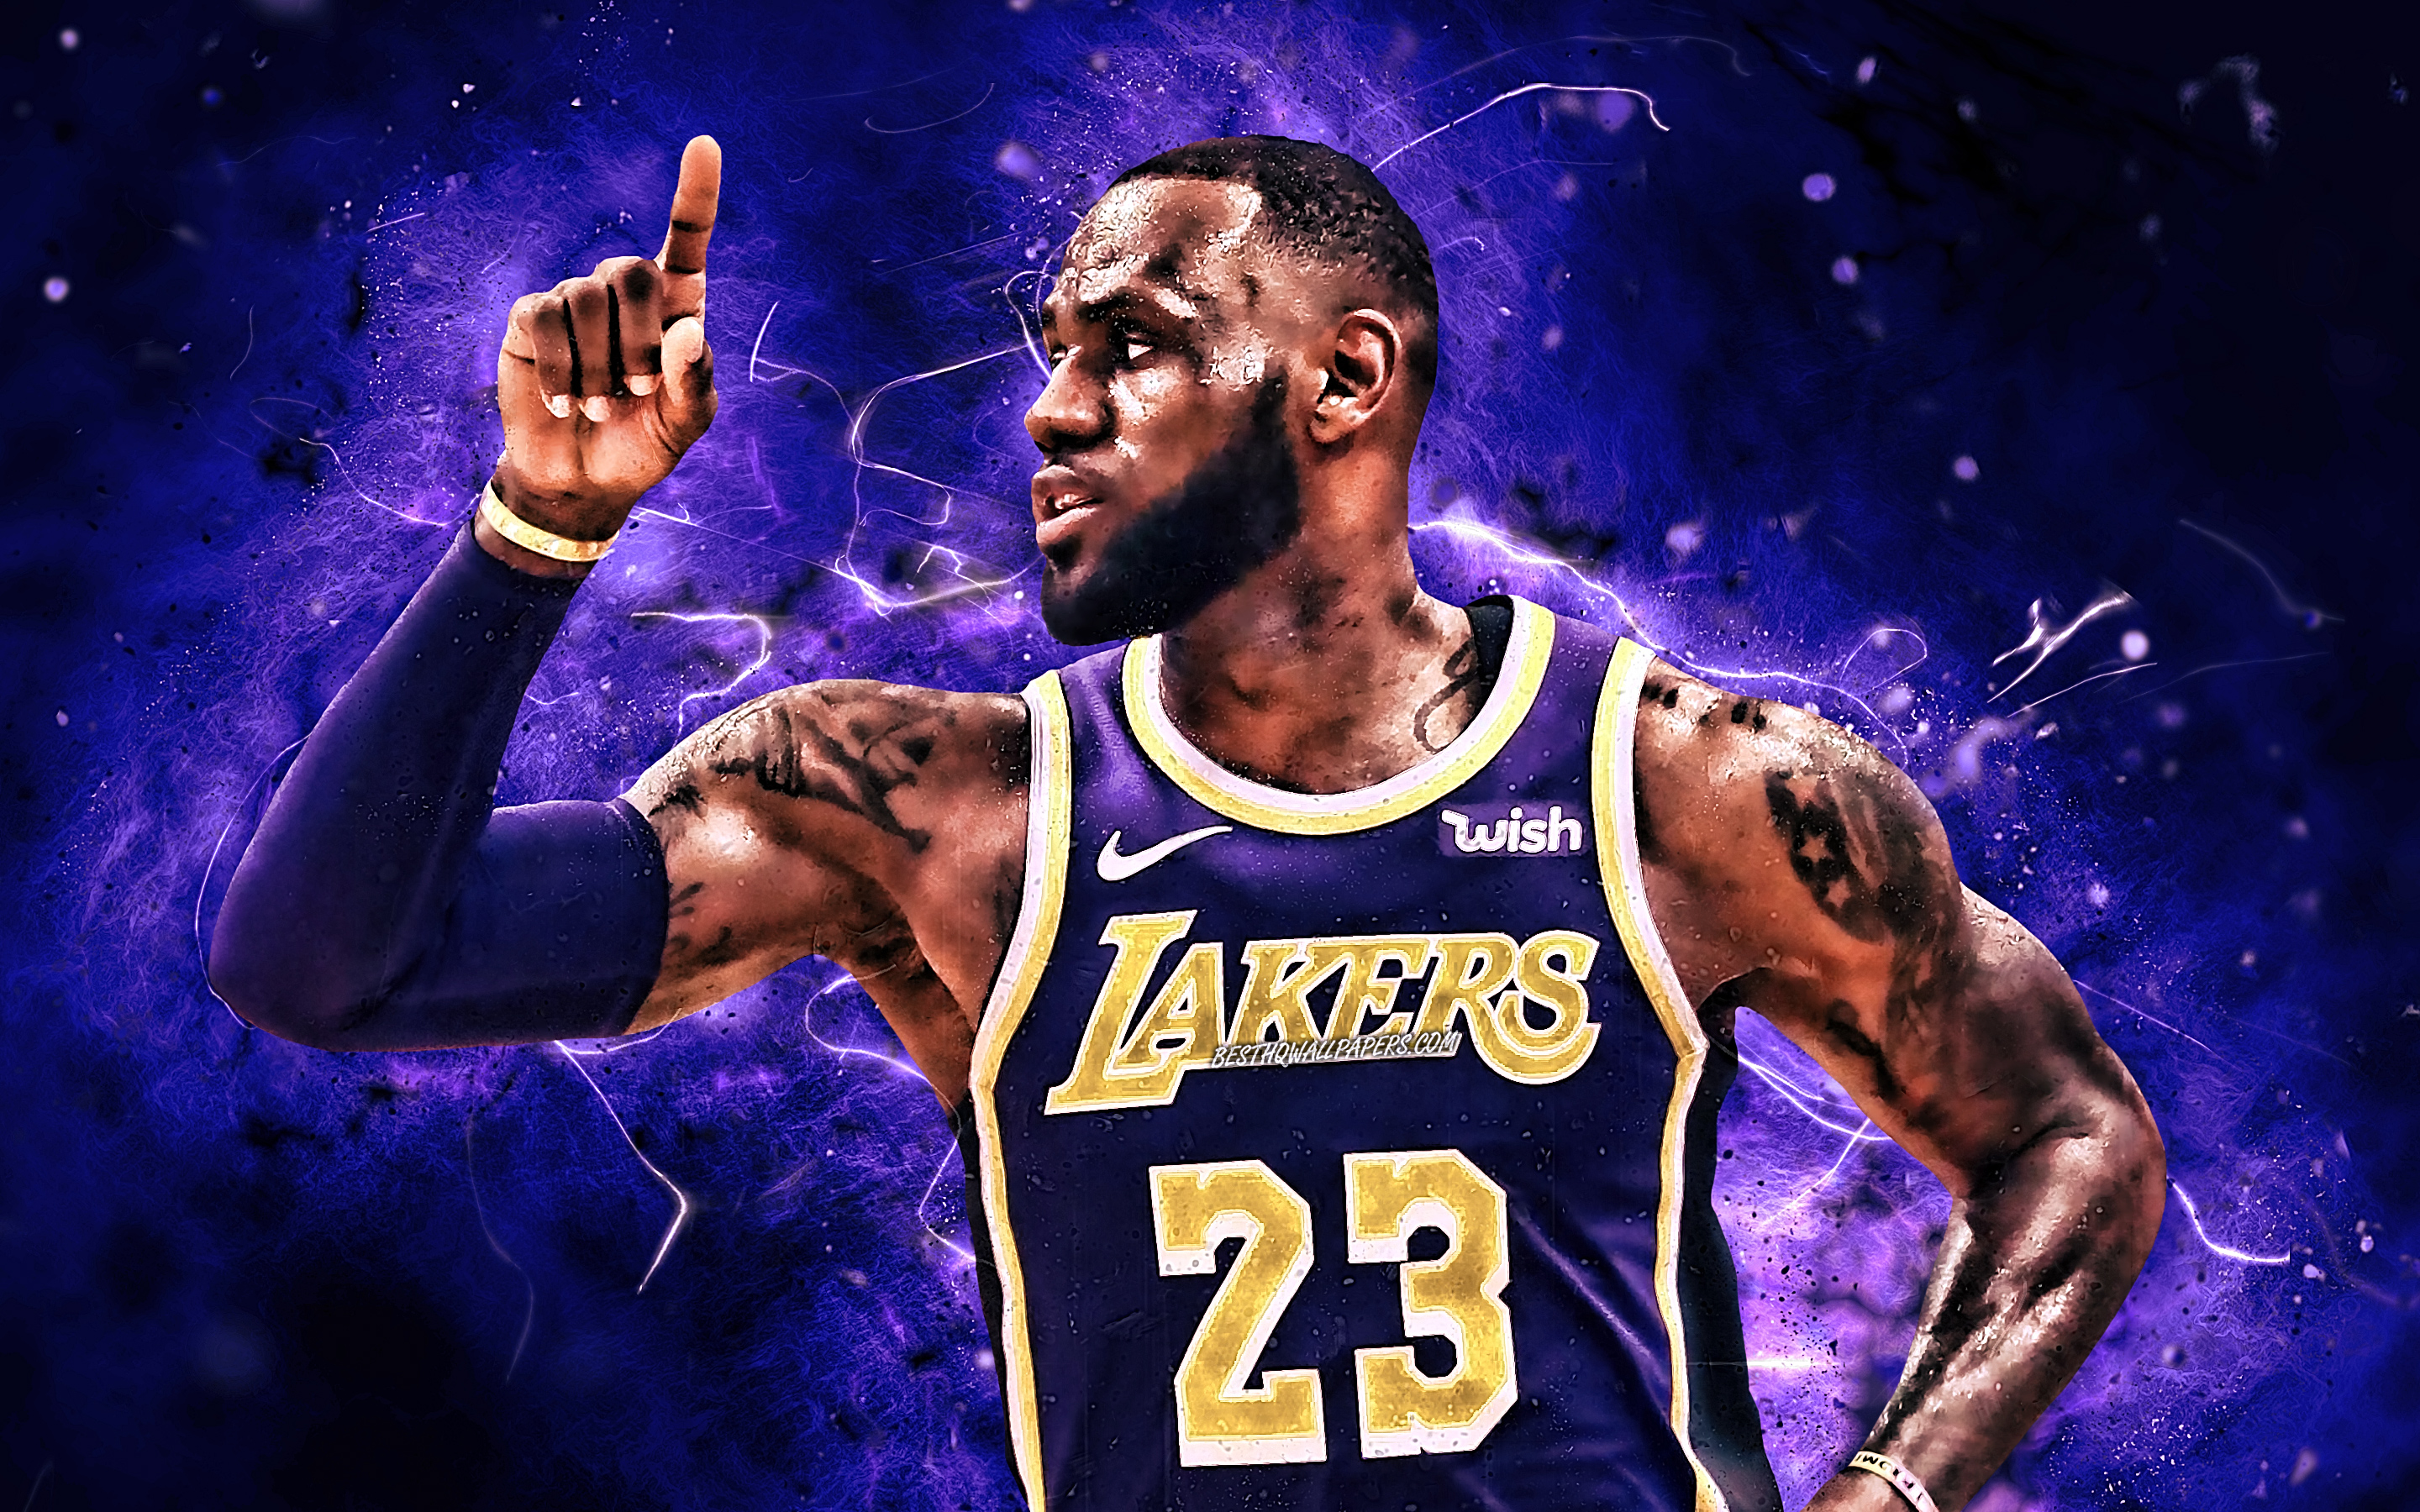 Lebron James Lakers Wallpapers: Download Wallpapers LeBron James, Violet Uniform, NBA, Los